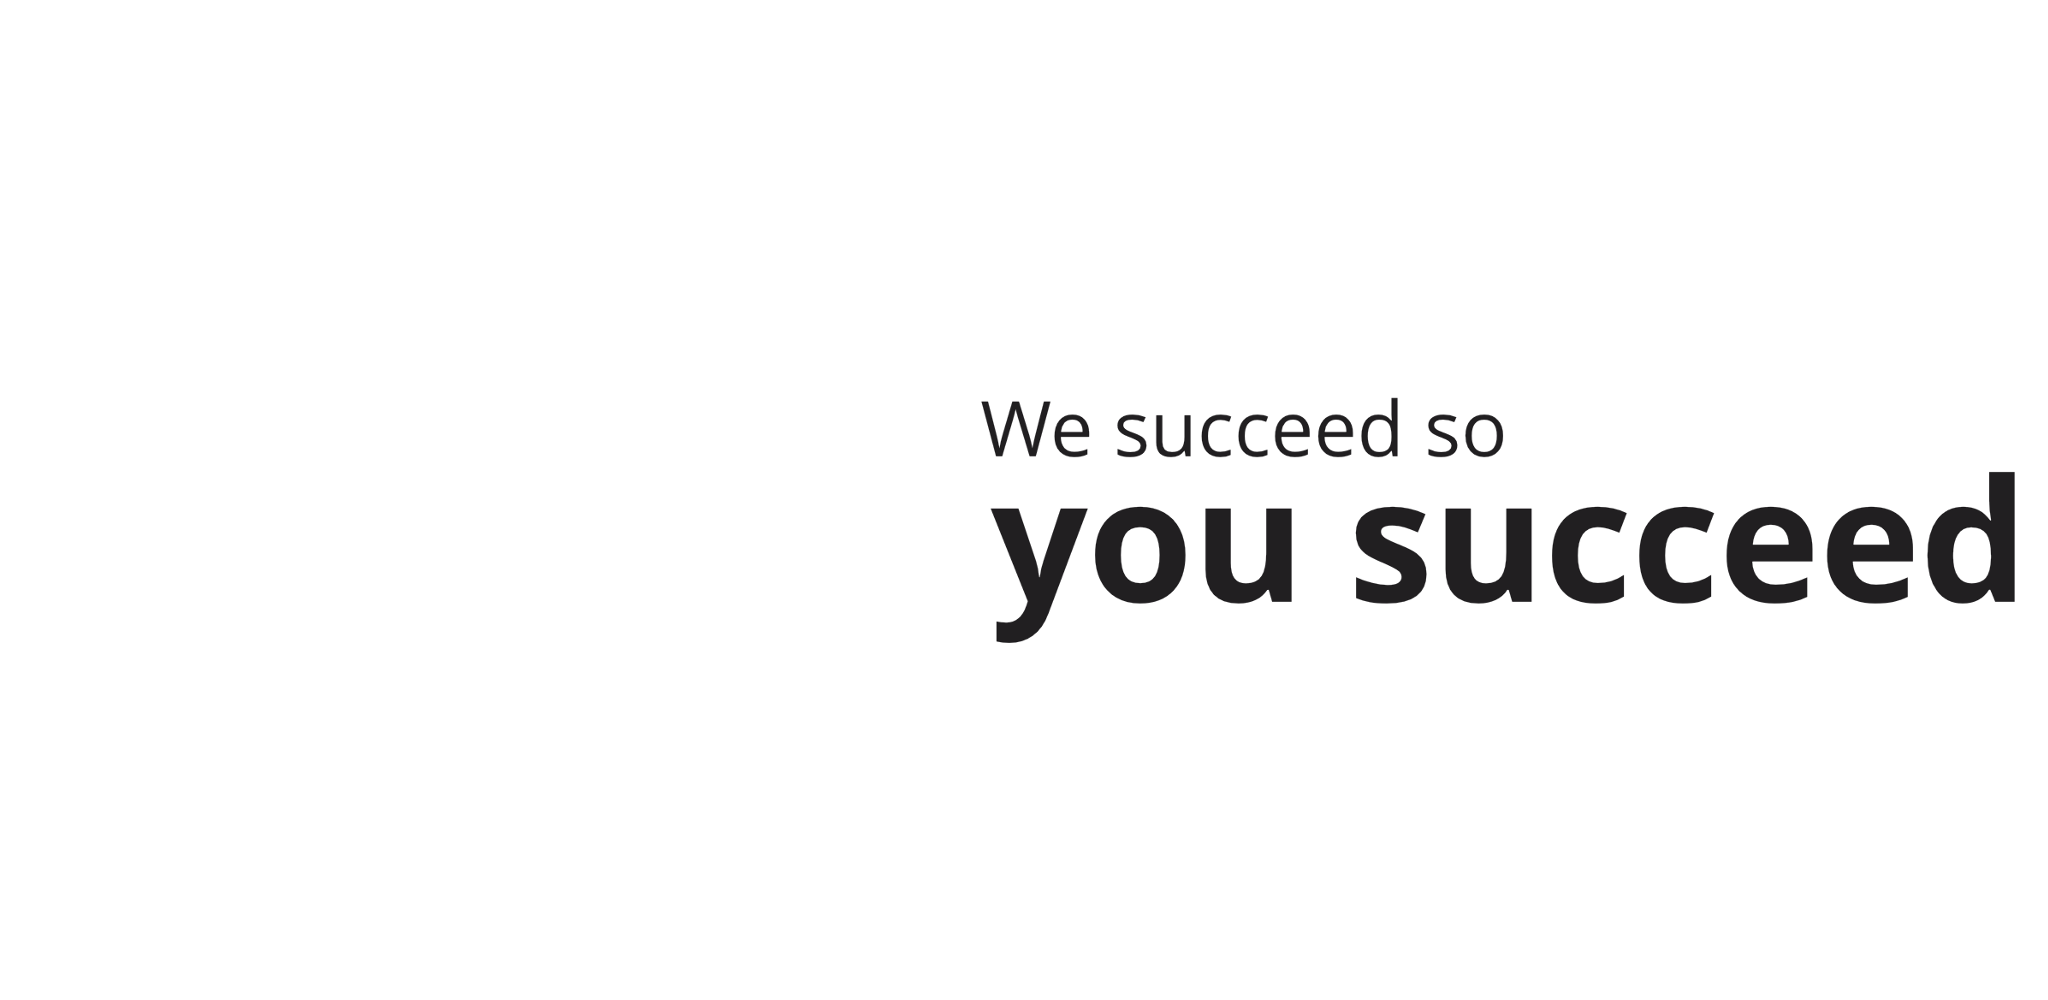 We succeed so you succeed